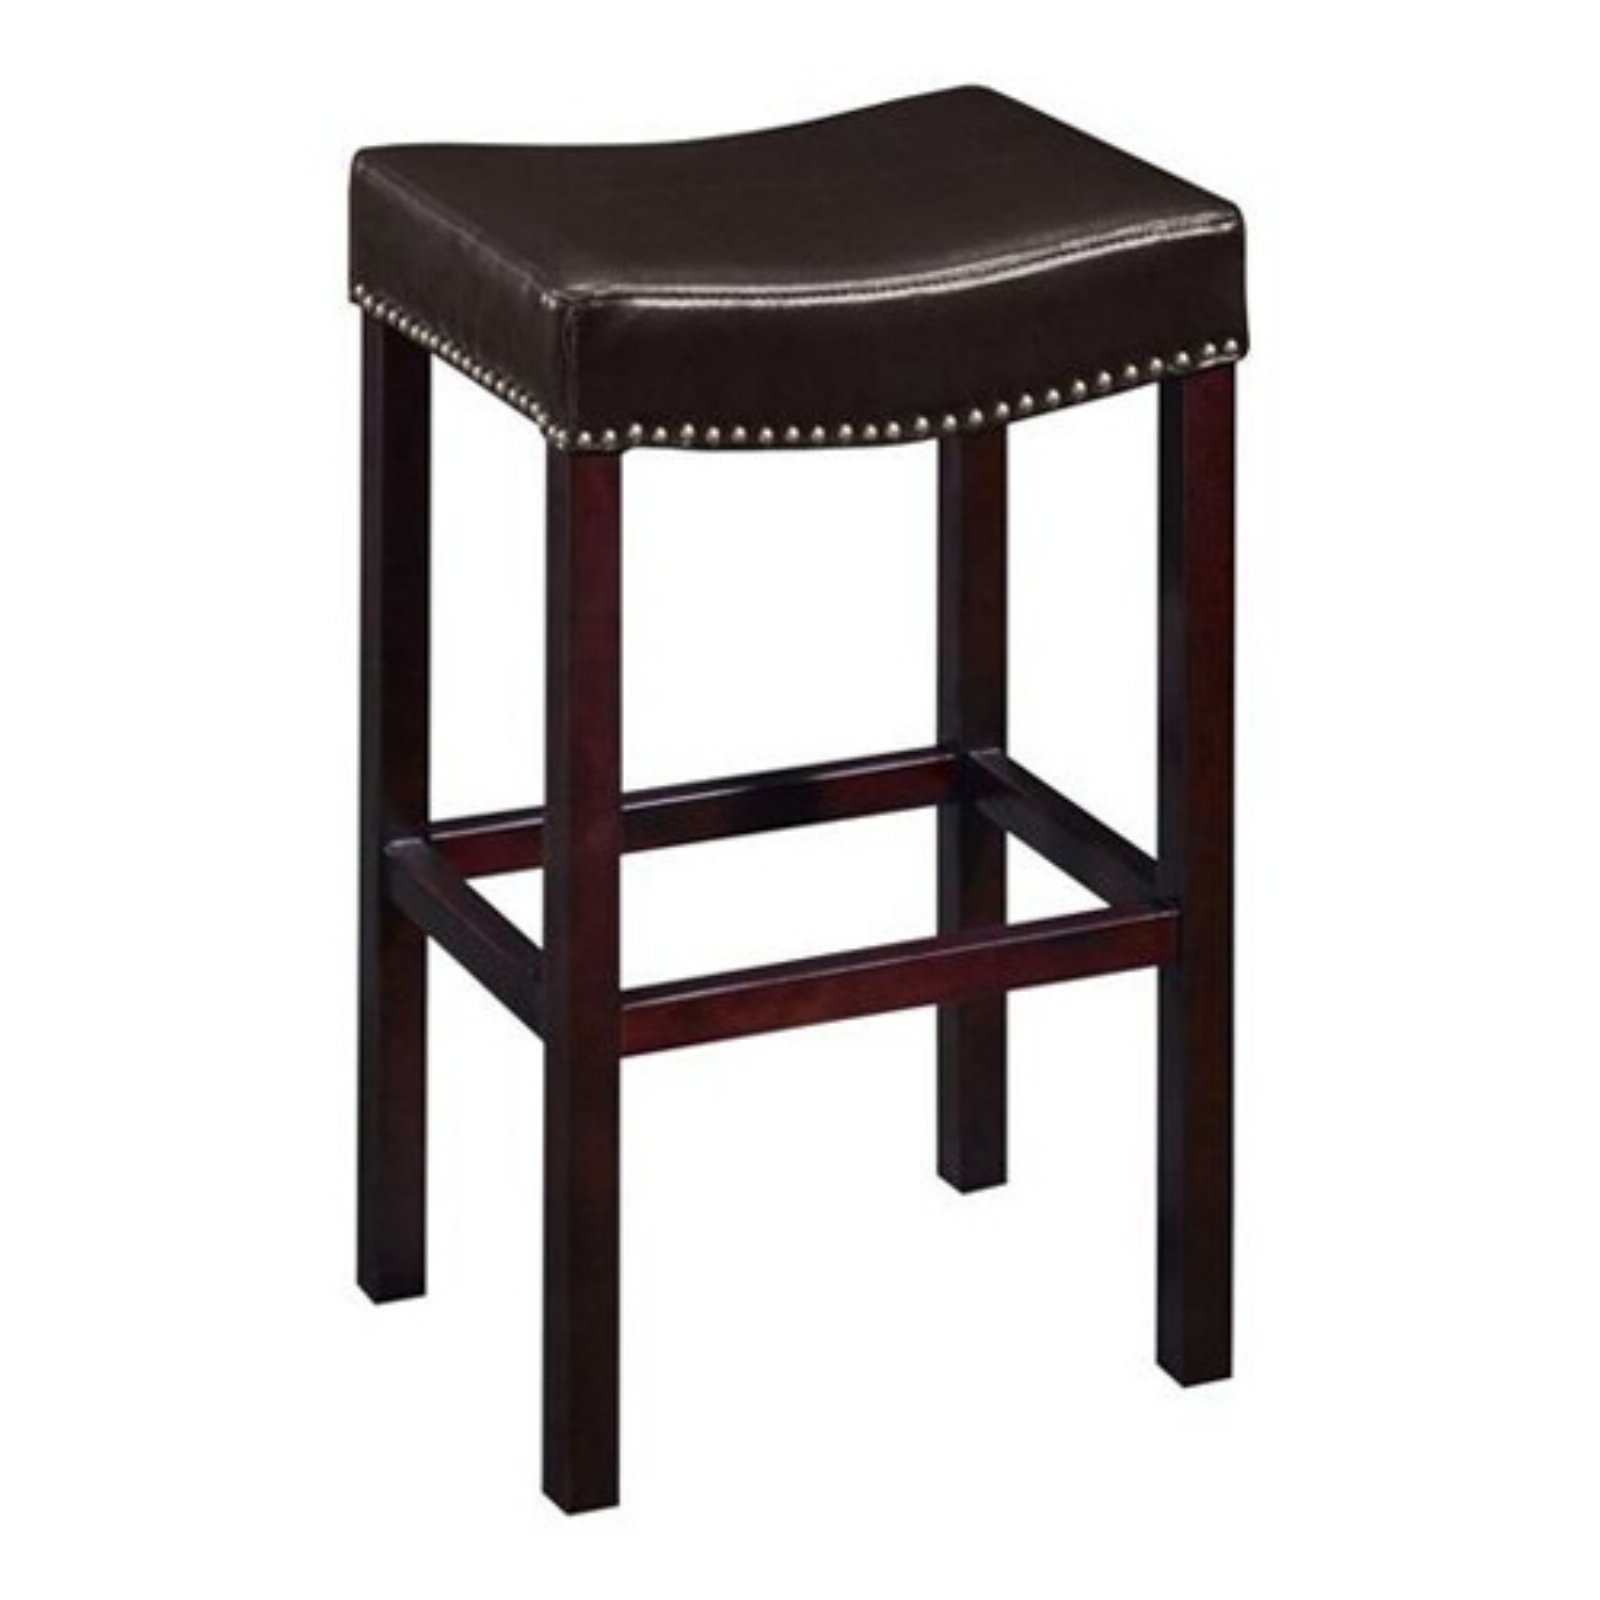 "Tudor Backless 30"" Stationary Barstool, Antique Brown Leather with Nailhead Accents"